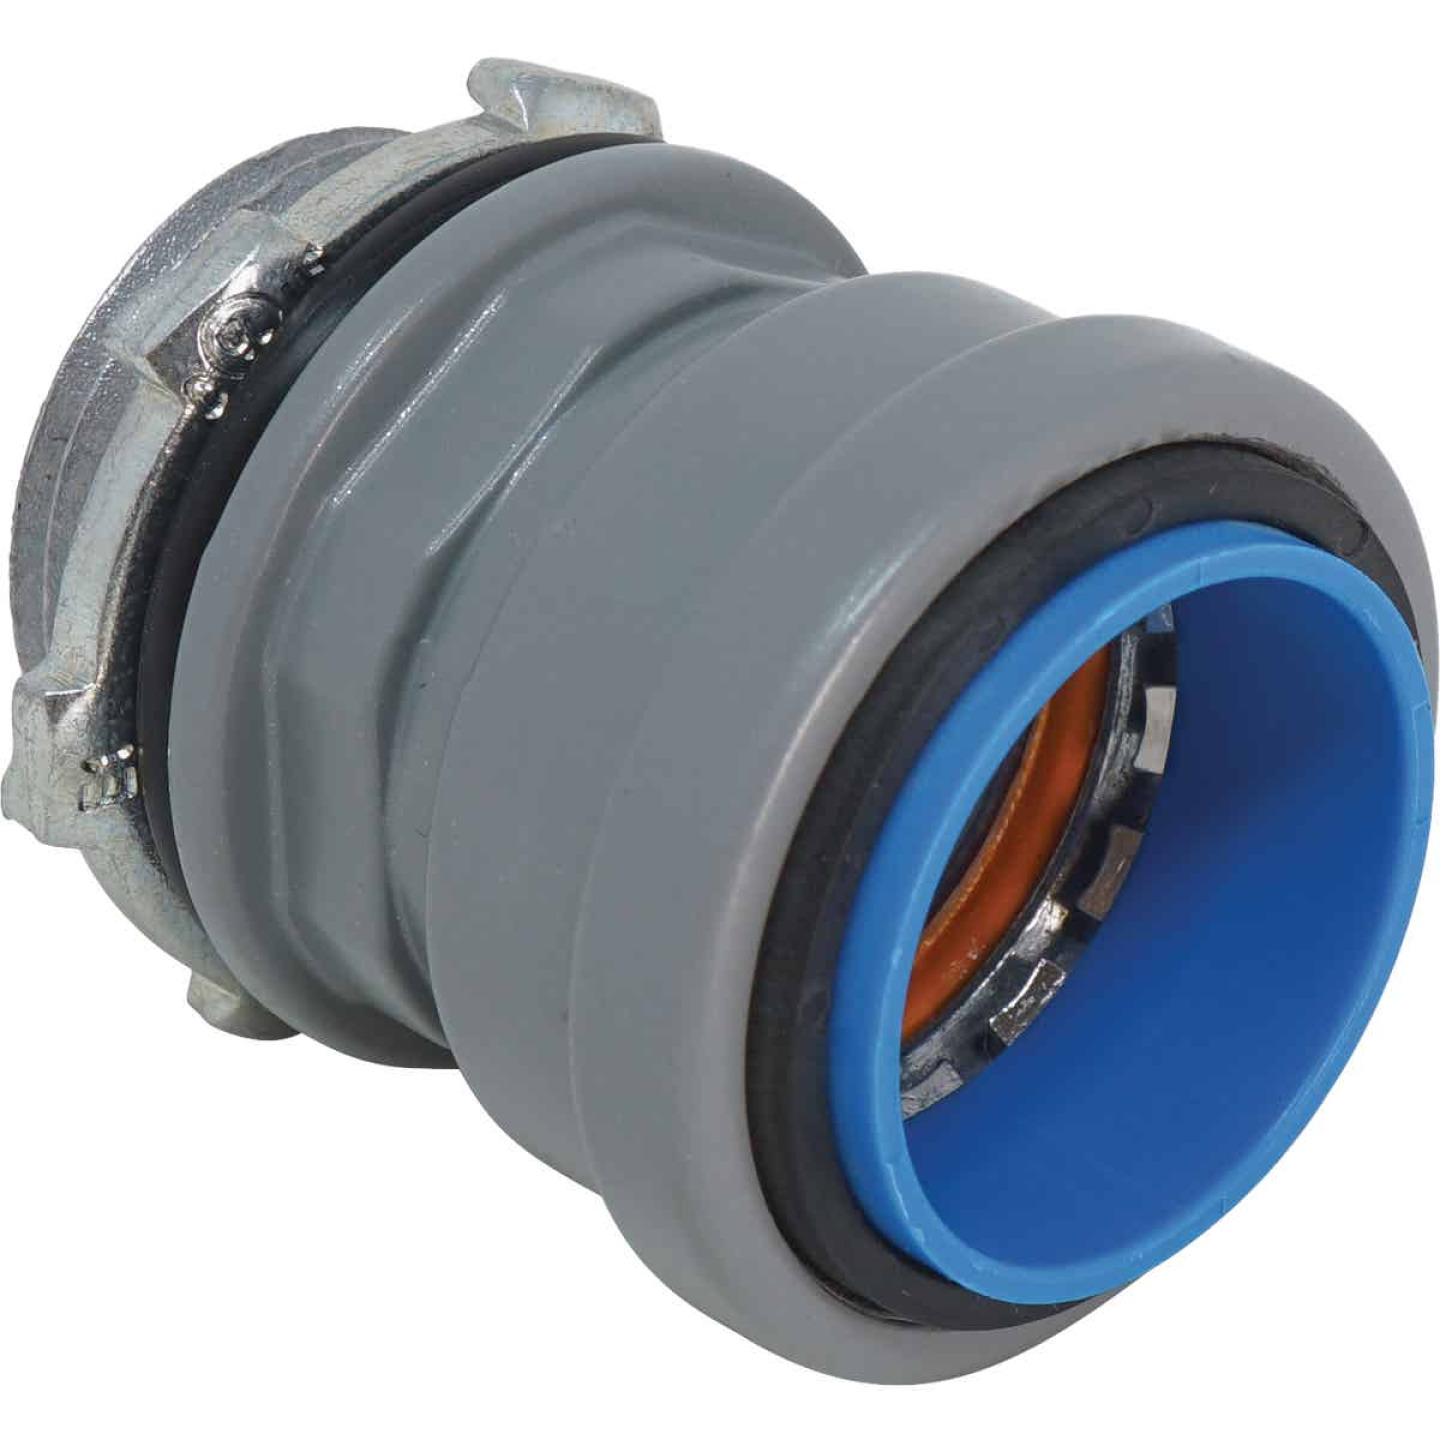 Southwire SimPush 3/4 In. Liquid Tight Metallic Push-To-Install Box Connector Image 1